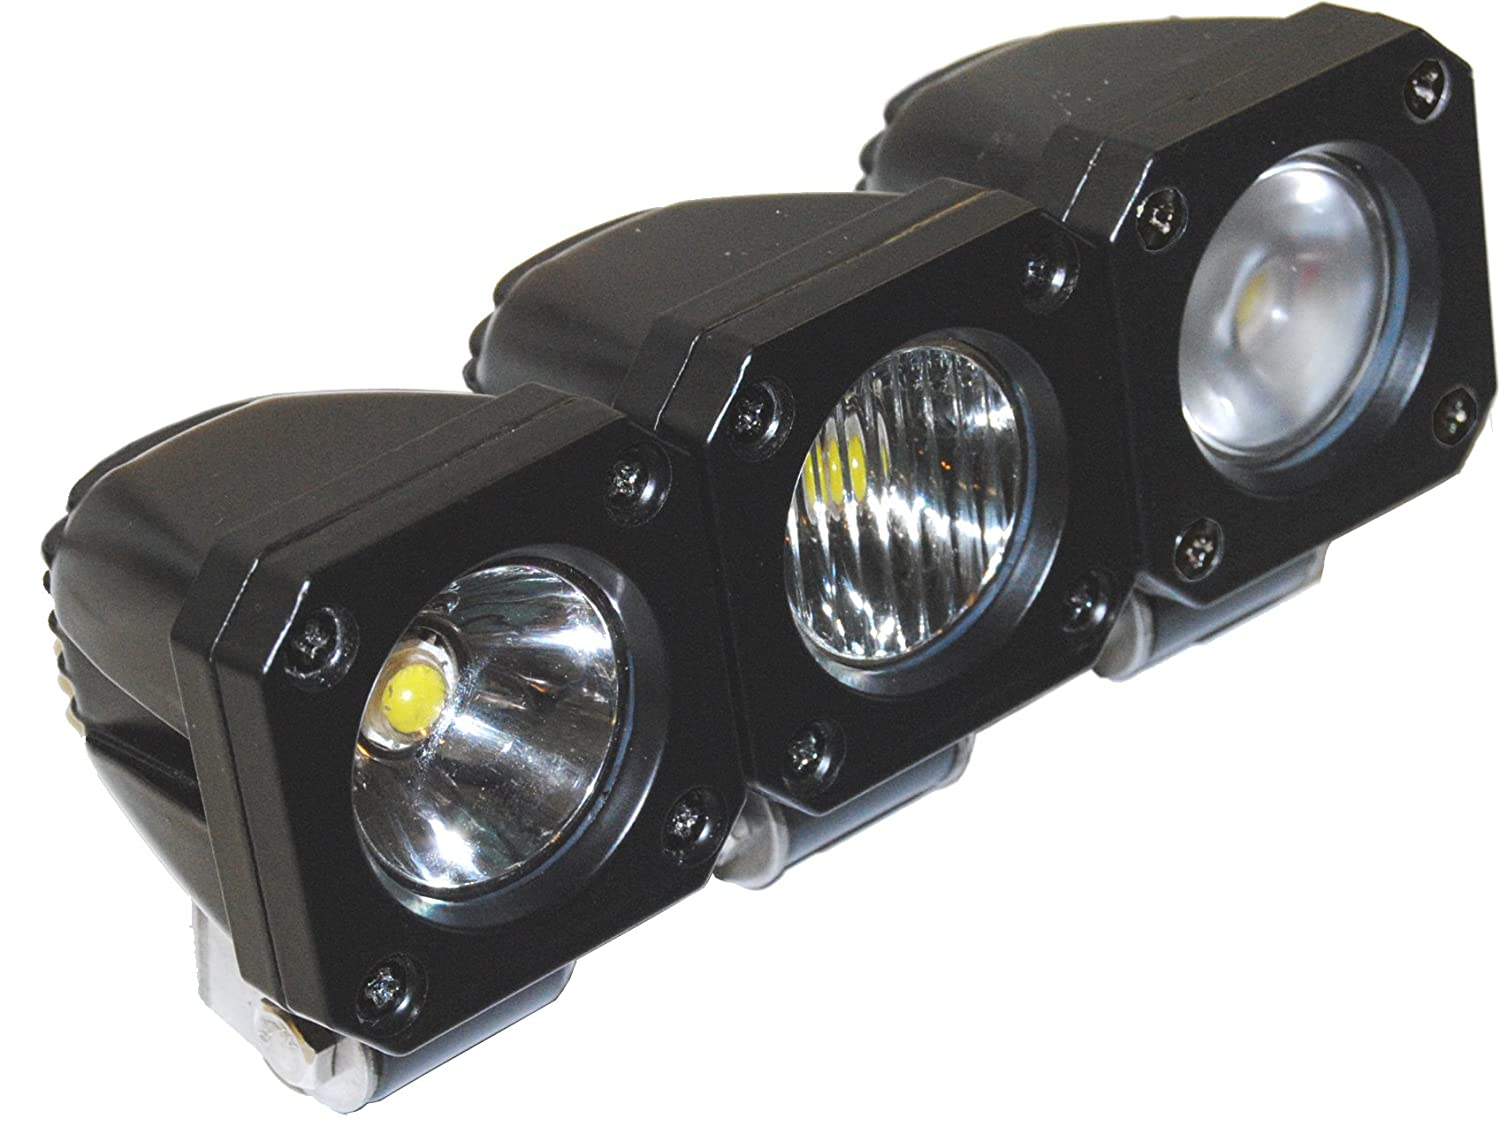 """Amazon.com: Jammy Sol Series One - One Piece 2""""x2"""" 800 Lumen LED Light for  Off Road Aux Work Lamp with Euro / Spot / Flood Beam: Automotive"""